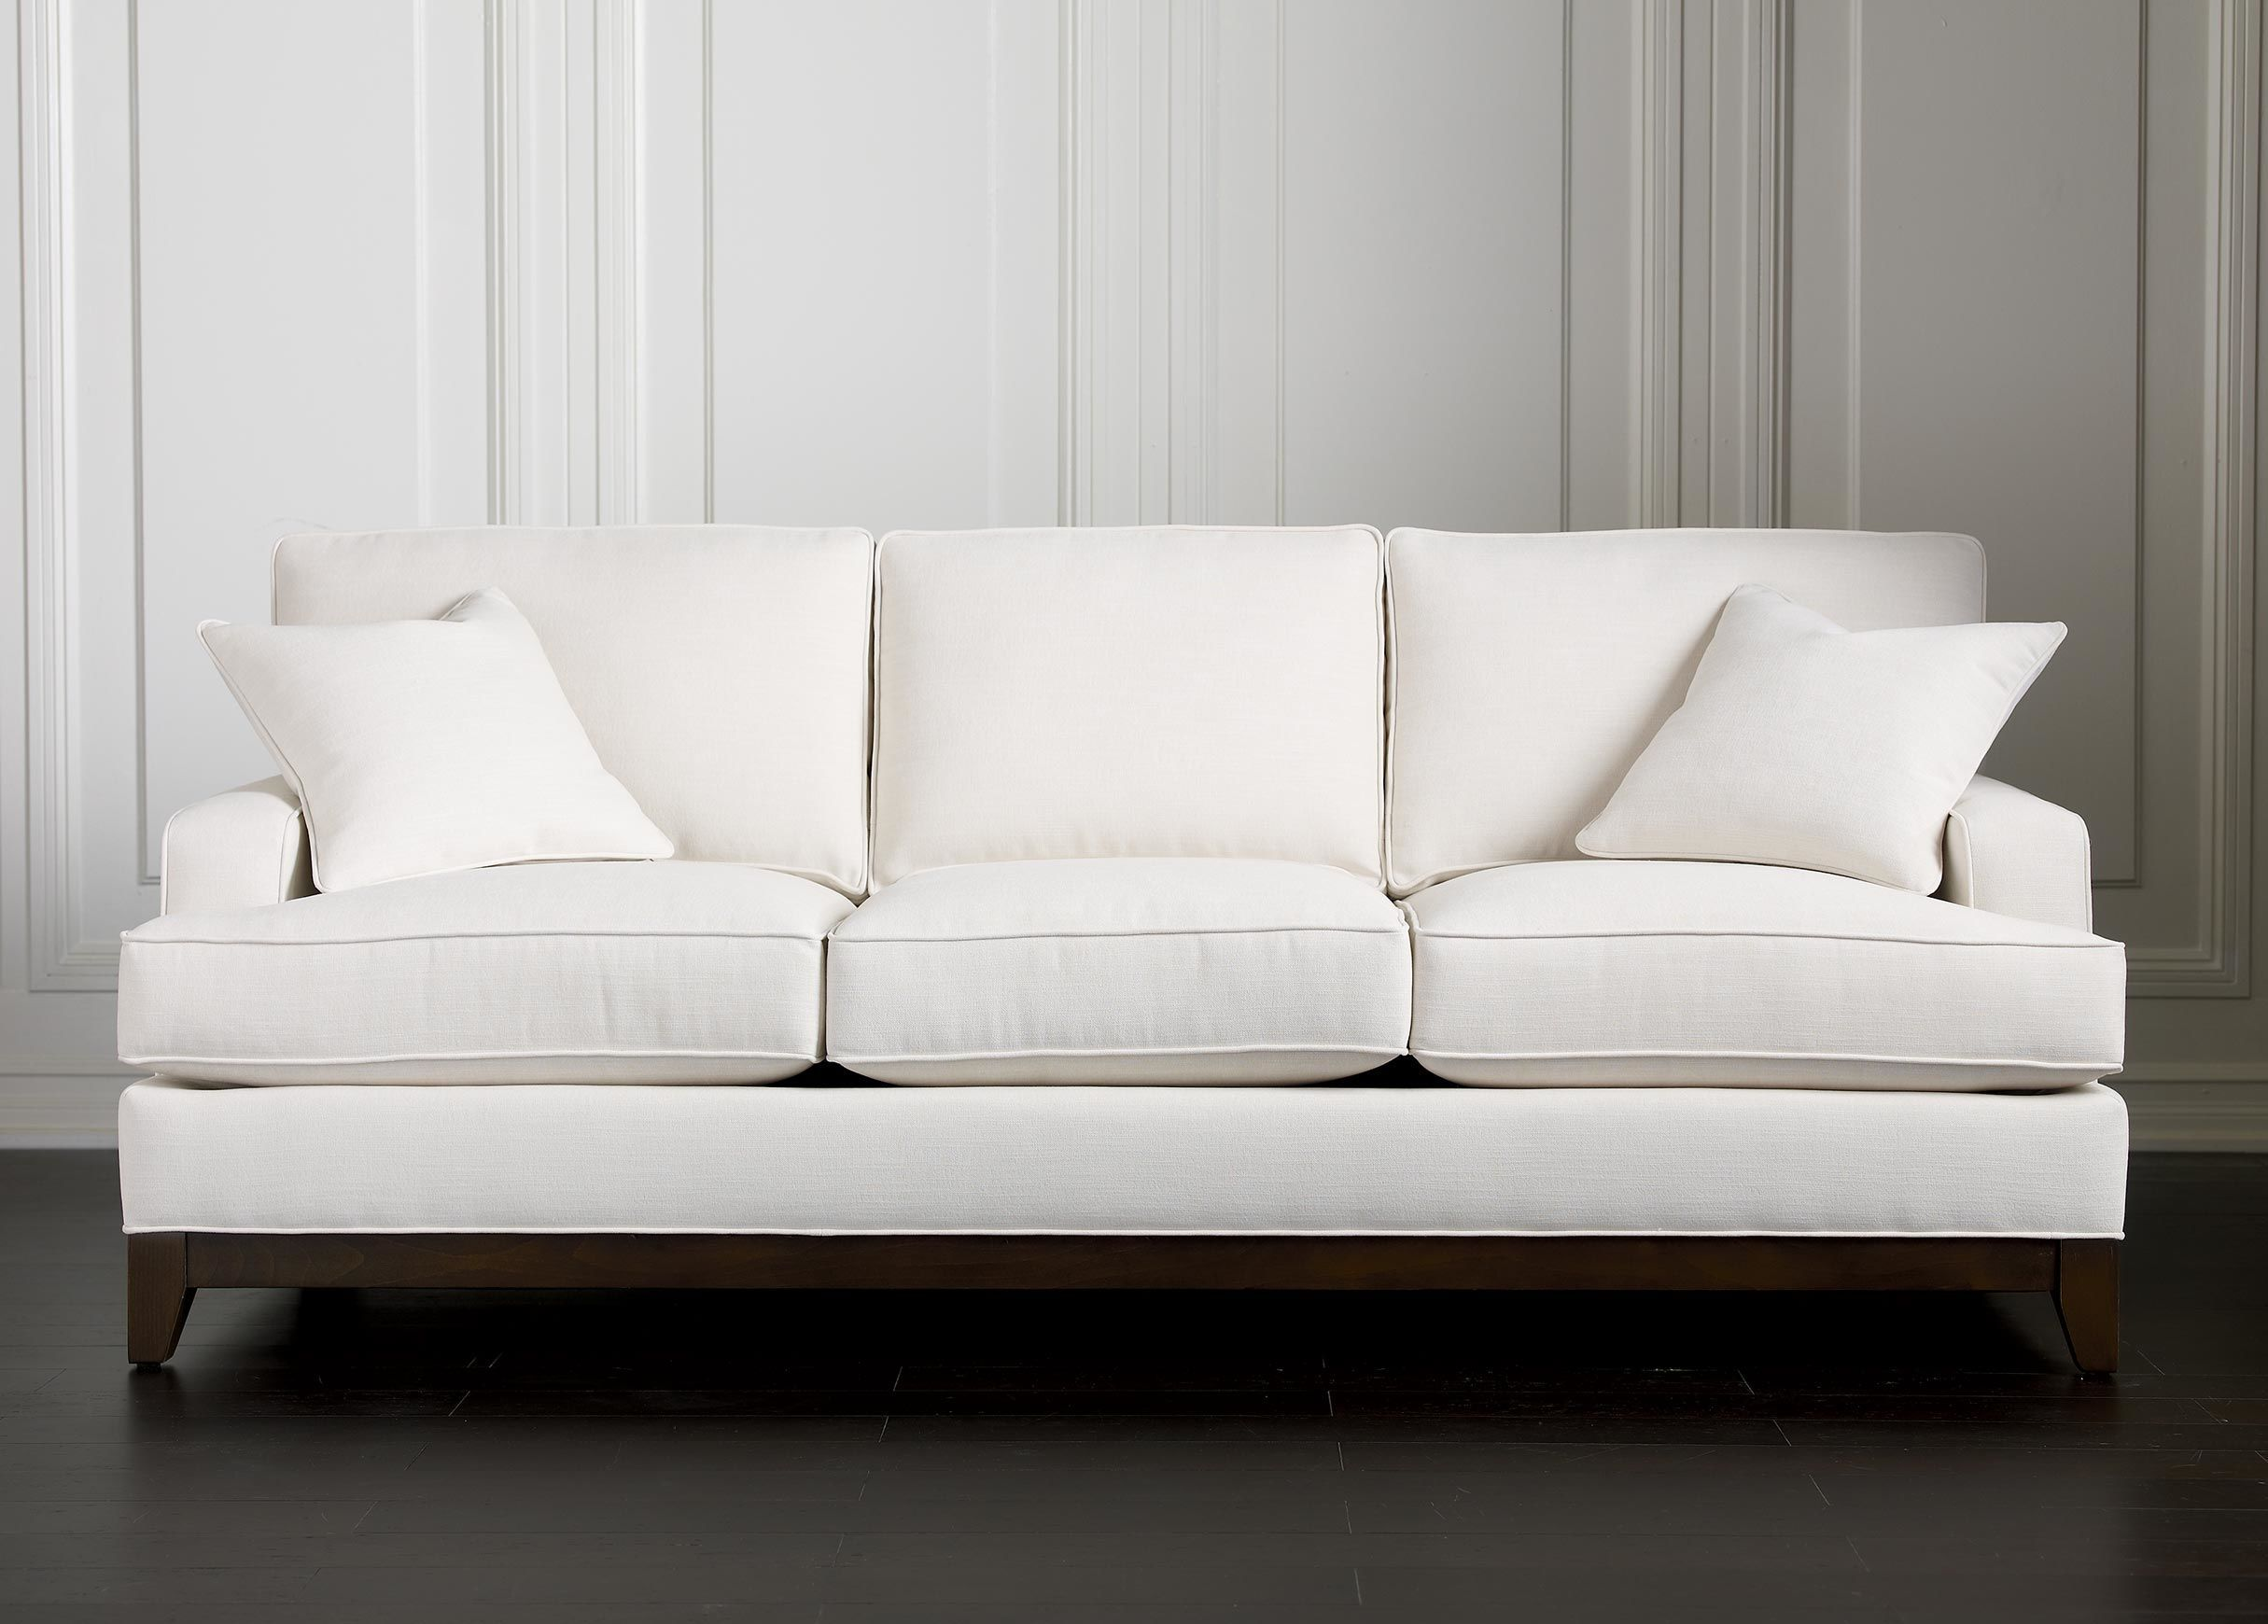 Simplicity sofas for sale - Buy Ethan Allen S Arcata Sofa Quick Ship Or Browse Other Products In Sofas Loveseats